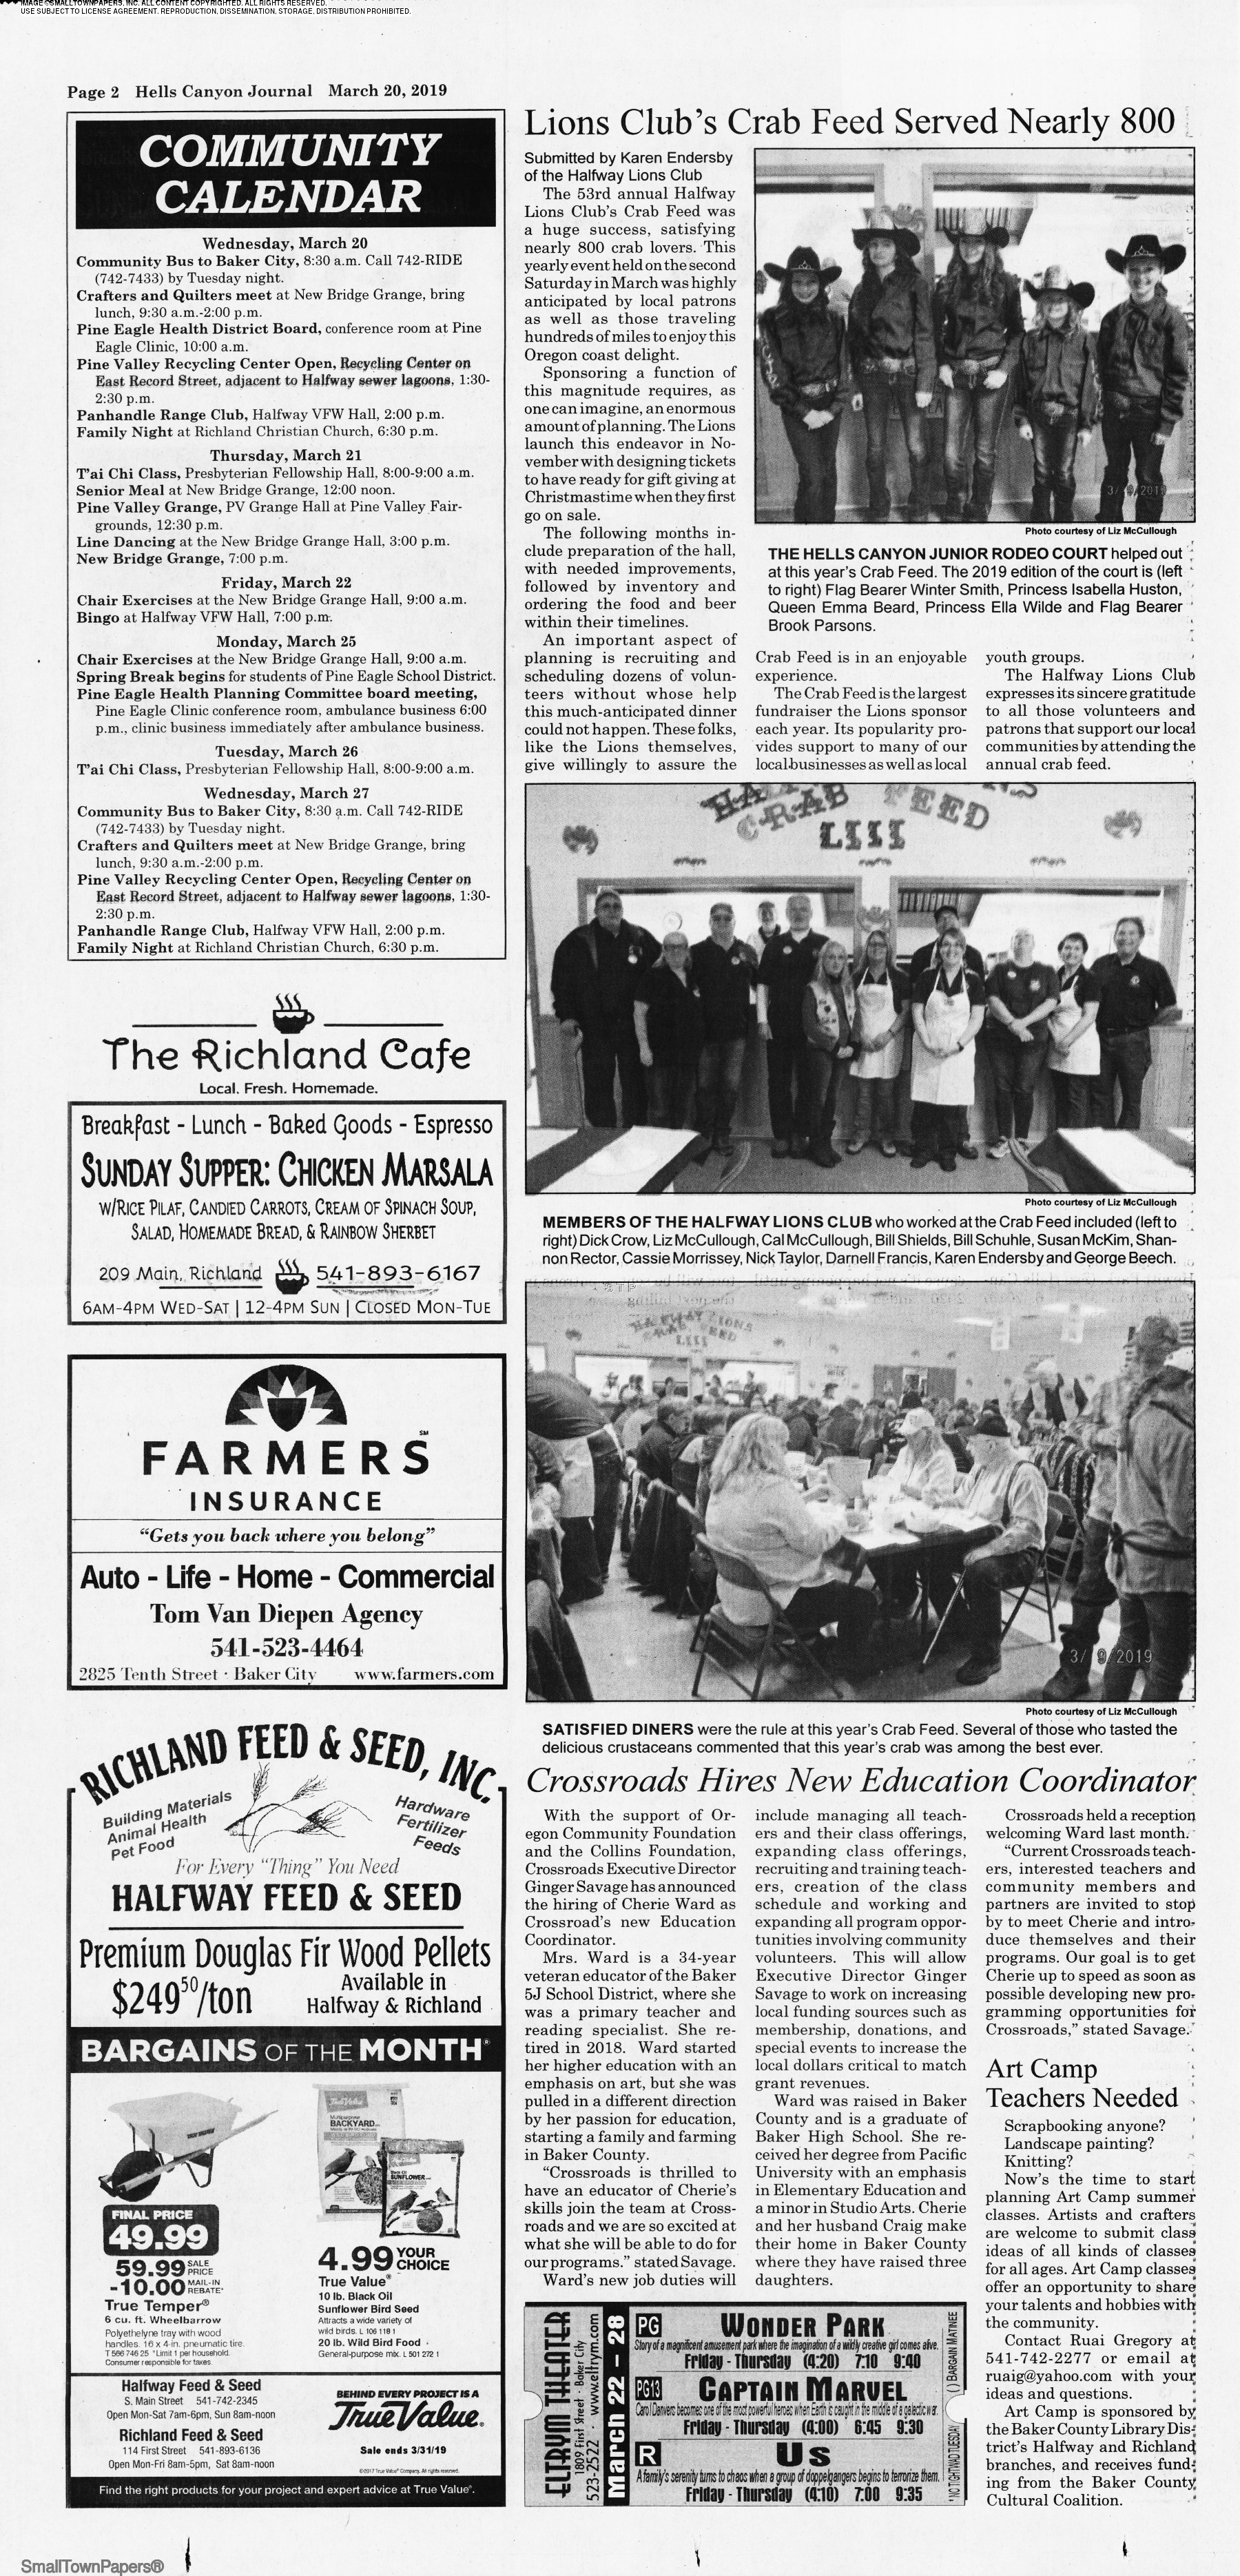 Hells Canyon Journal March 20, 2019: Page 2